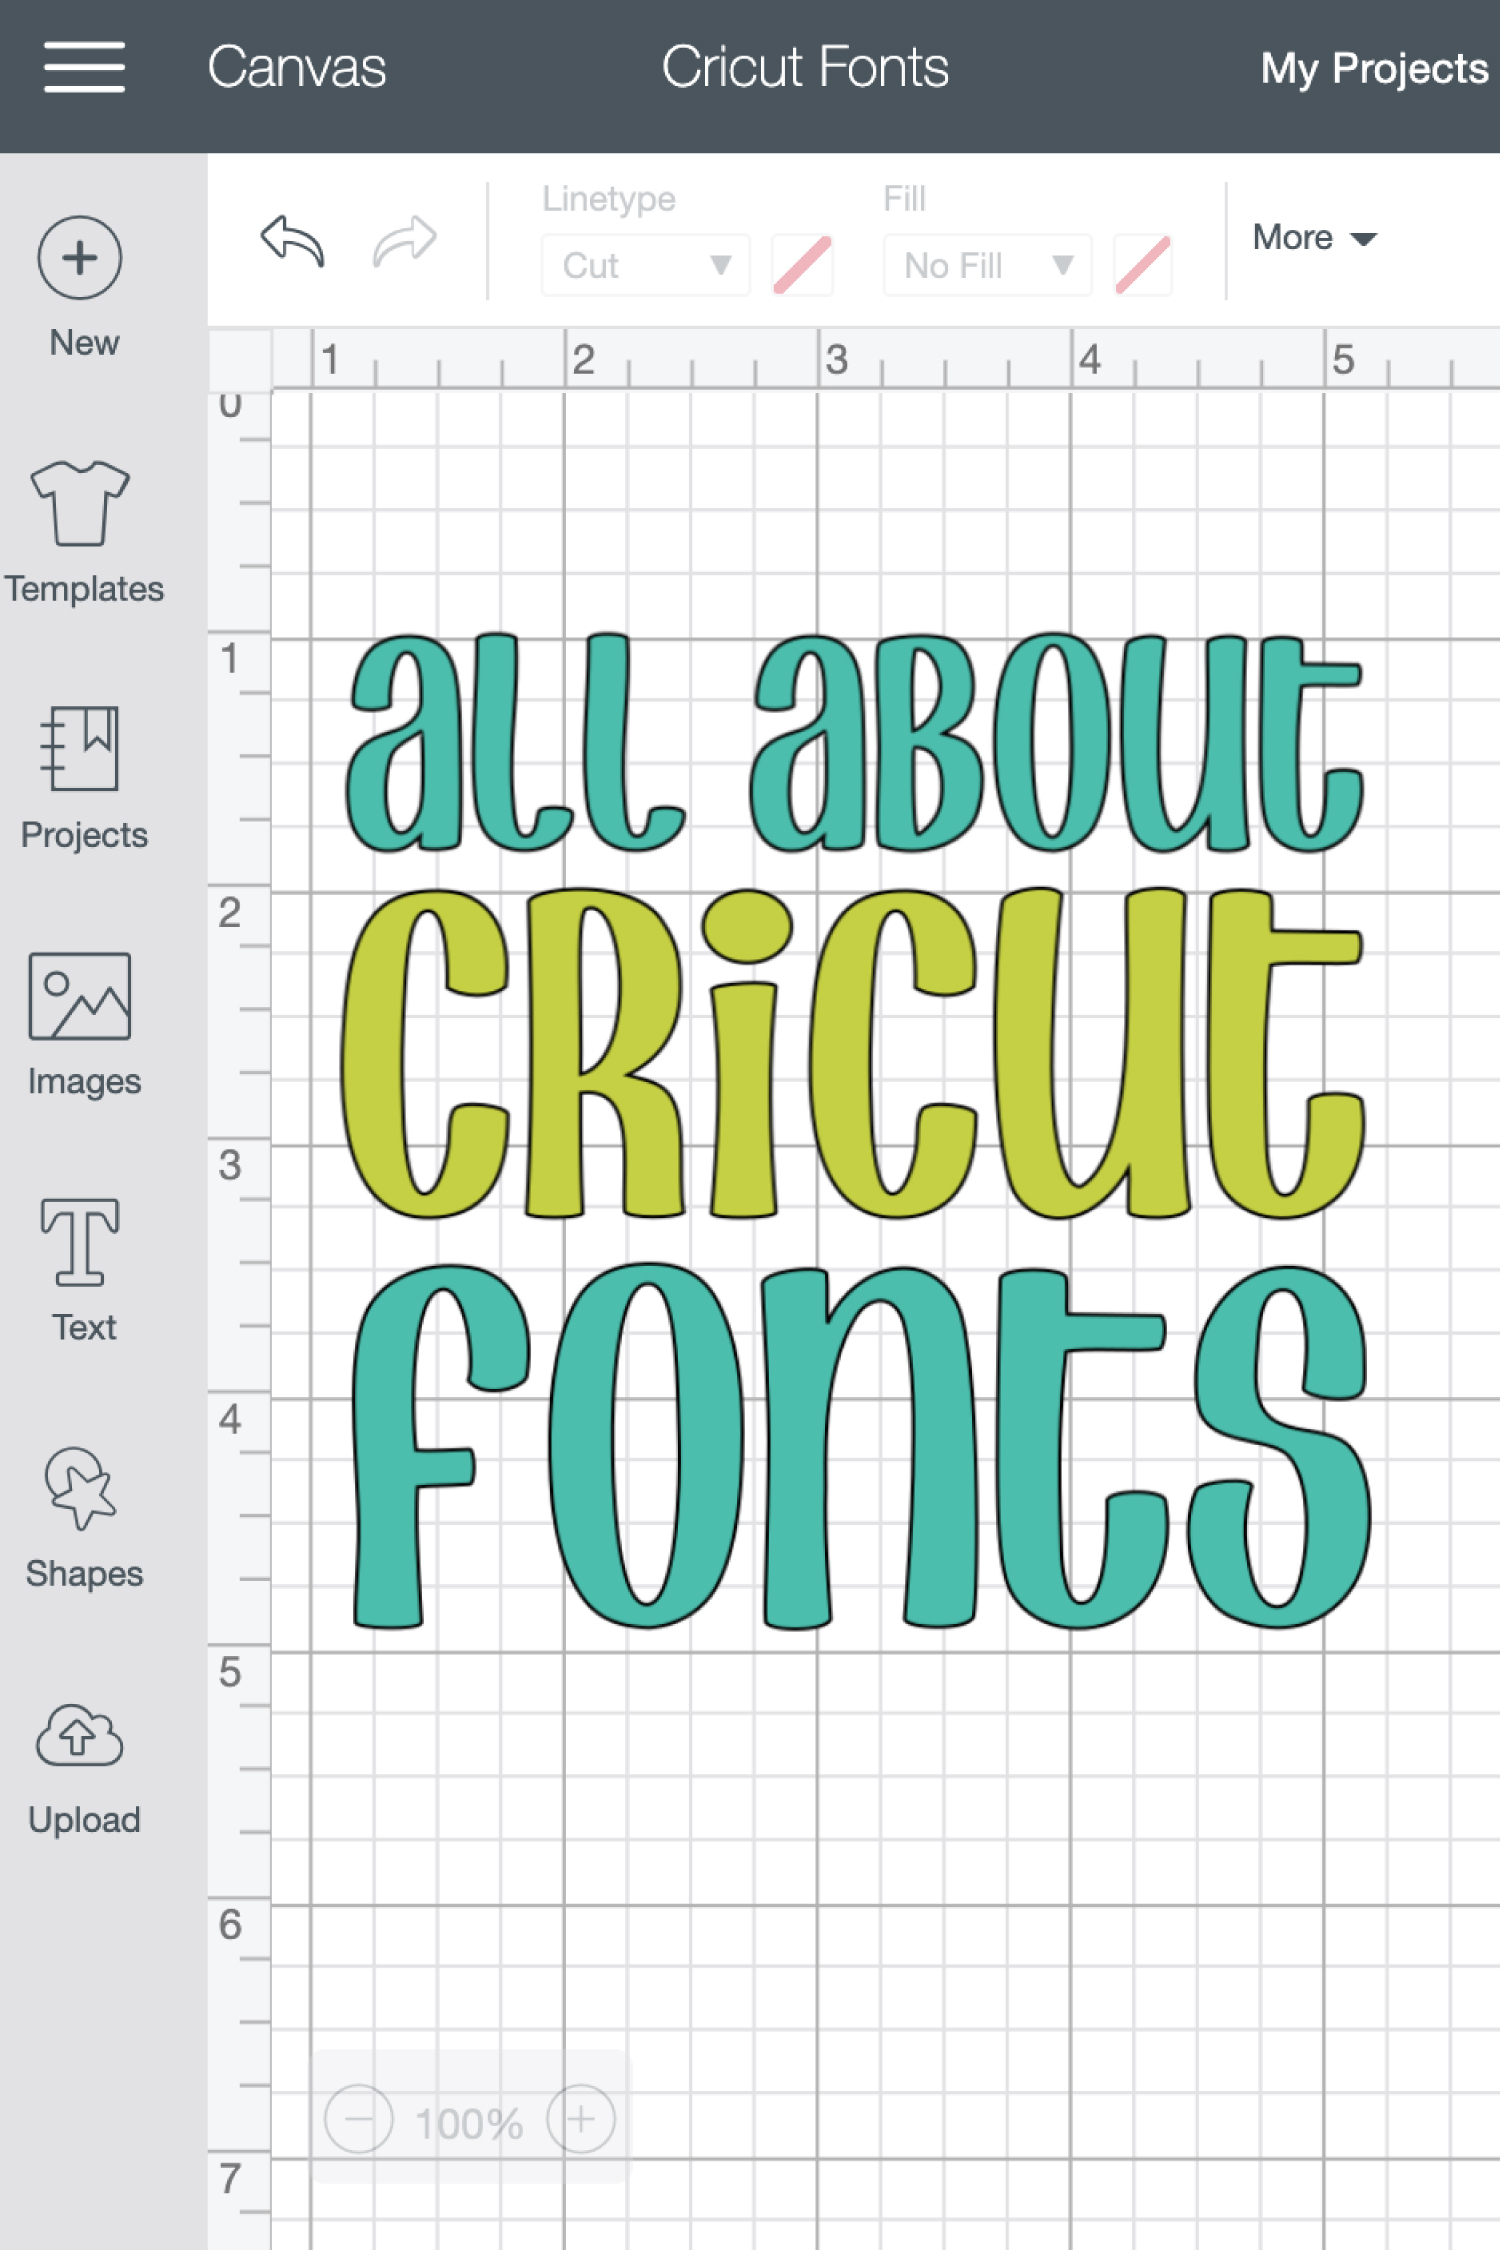 How to Upload Fonts to Cricut Design Space to Use on Crafts and Projects